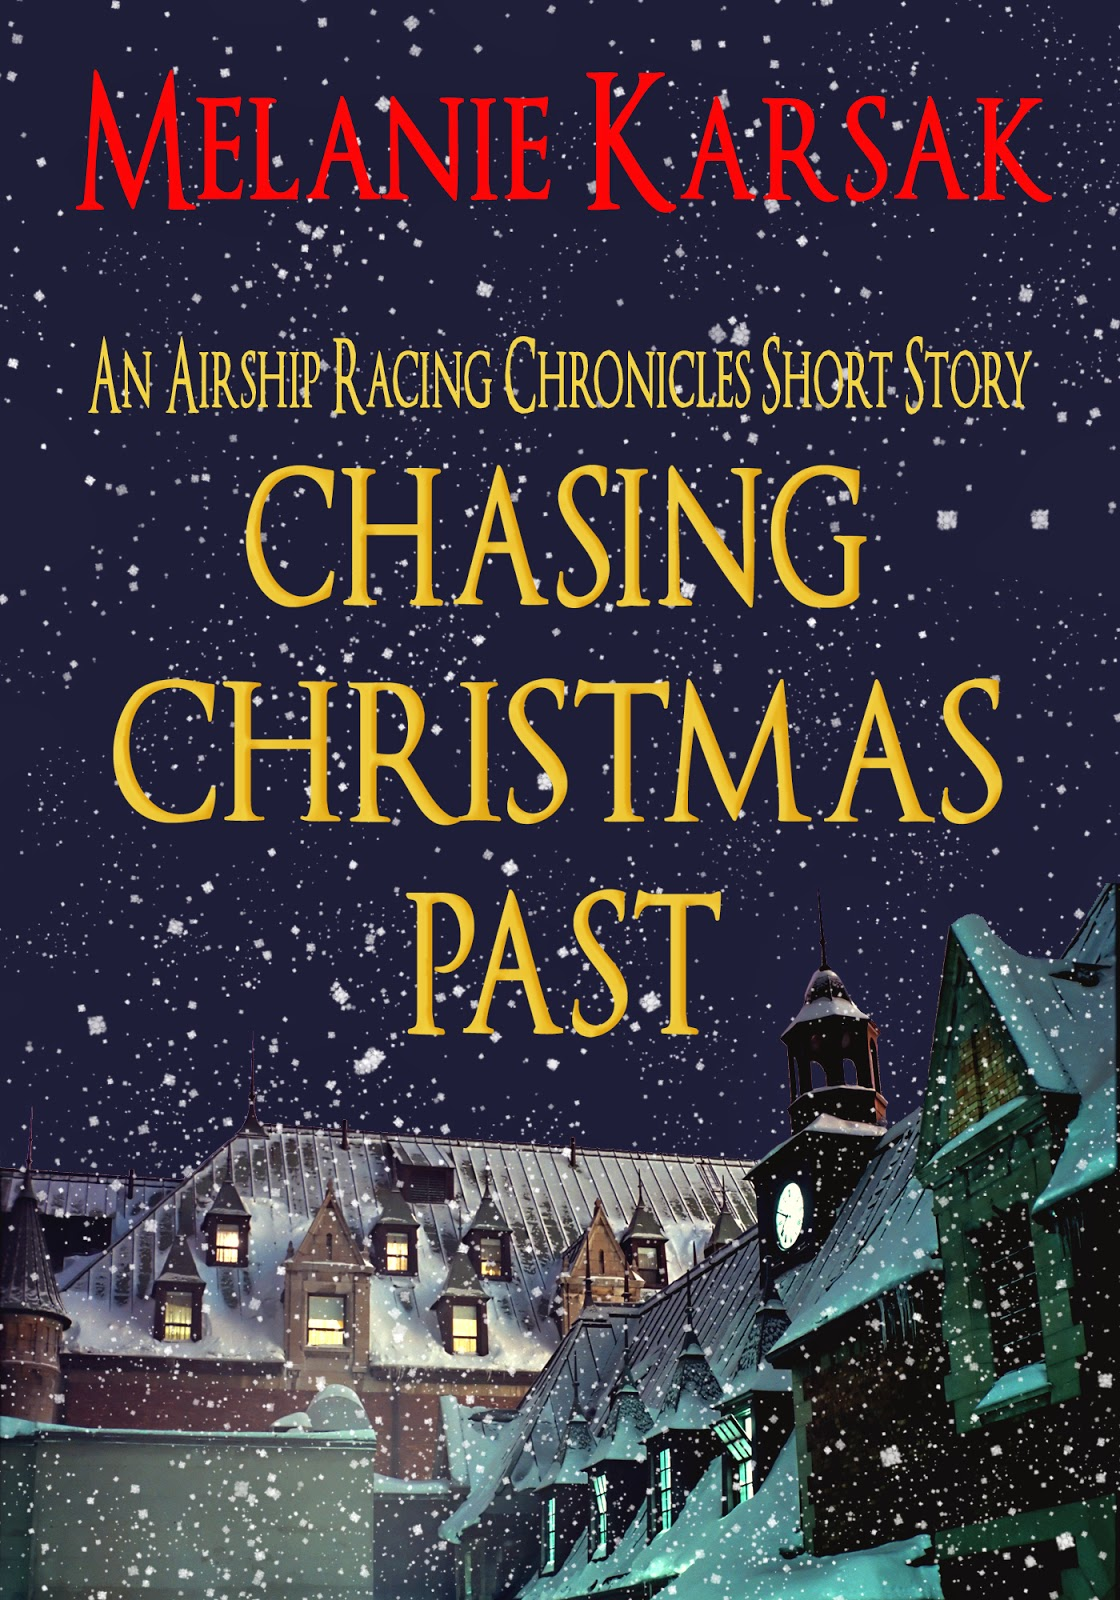 http://www.amazon.com/Chasing-Christmas-Past-Airship-Chronicles-ebook/dp/B00RA6ZA1Q/